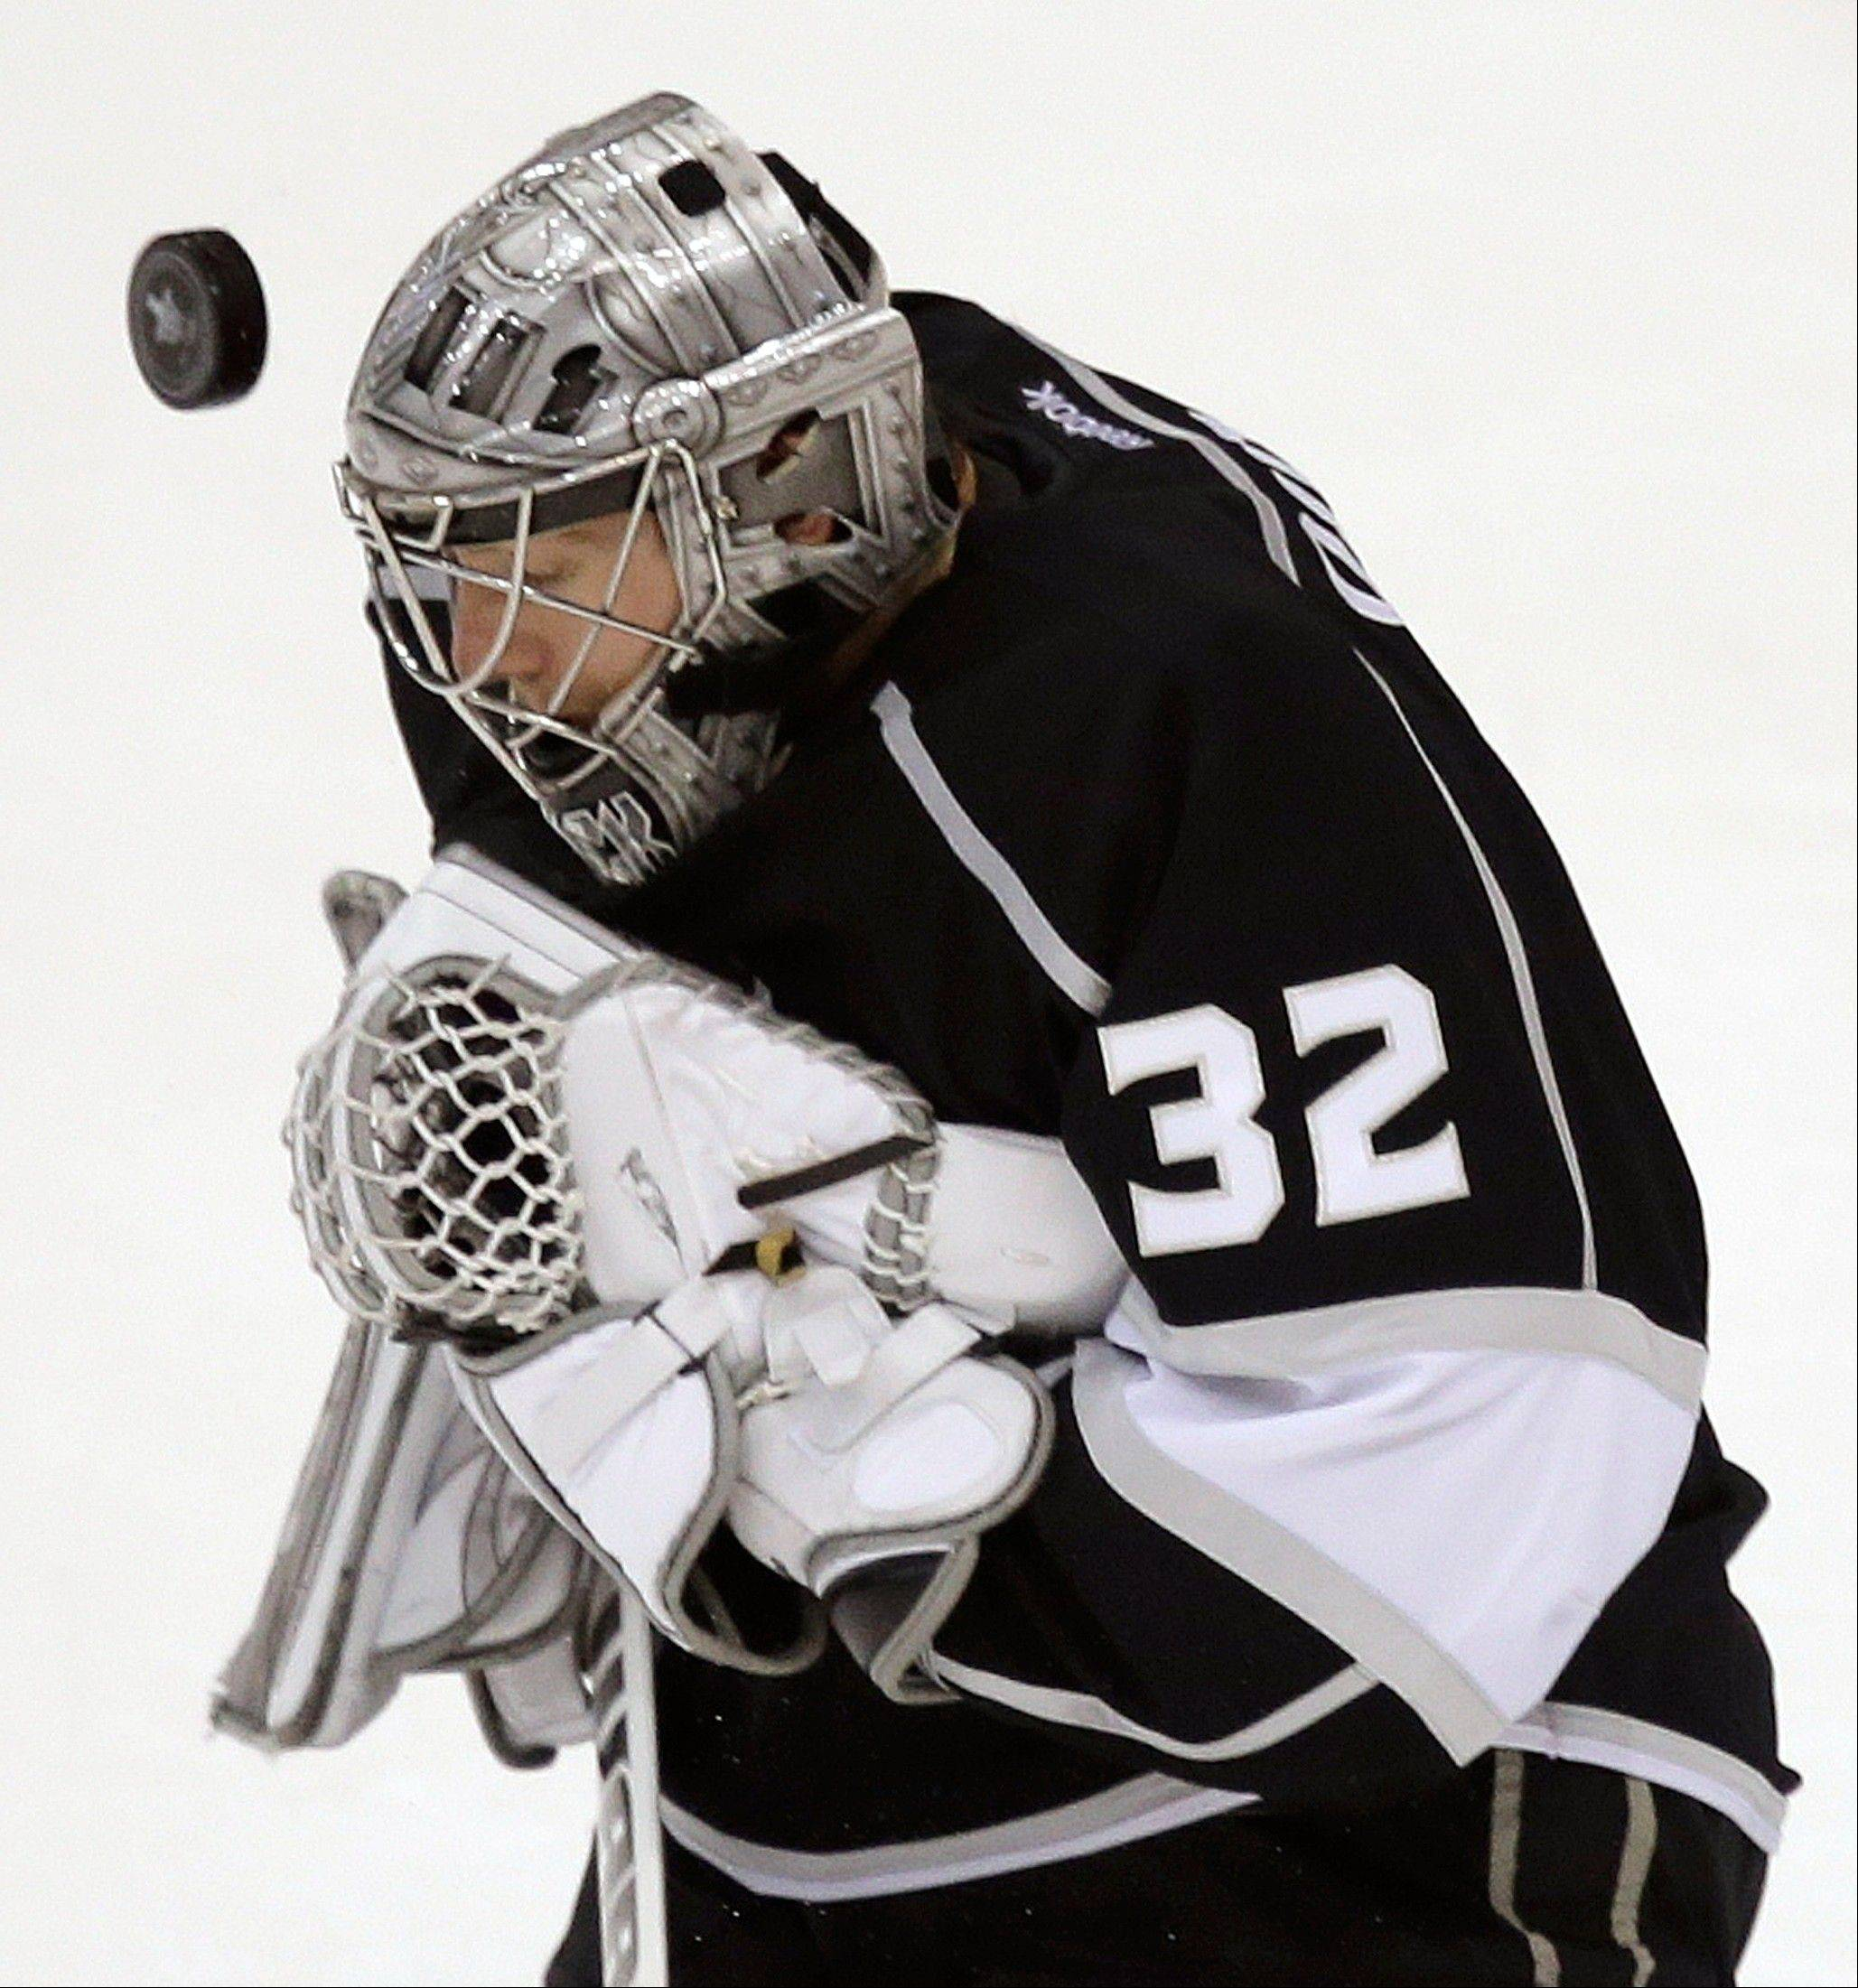 Los Angeles Kings goalie Jonathan Quick blocks a shot by the Chicago Blackhawks during the first period of Game 3 of the NHL hockey Stanley Cup playoffs Western Conference finals, Tuesday, June 4, 2013, in Los Angeles.